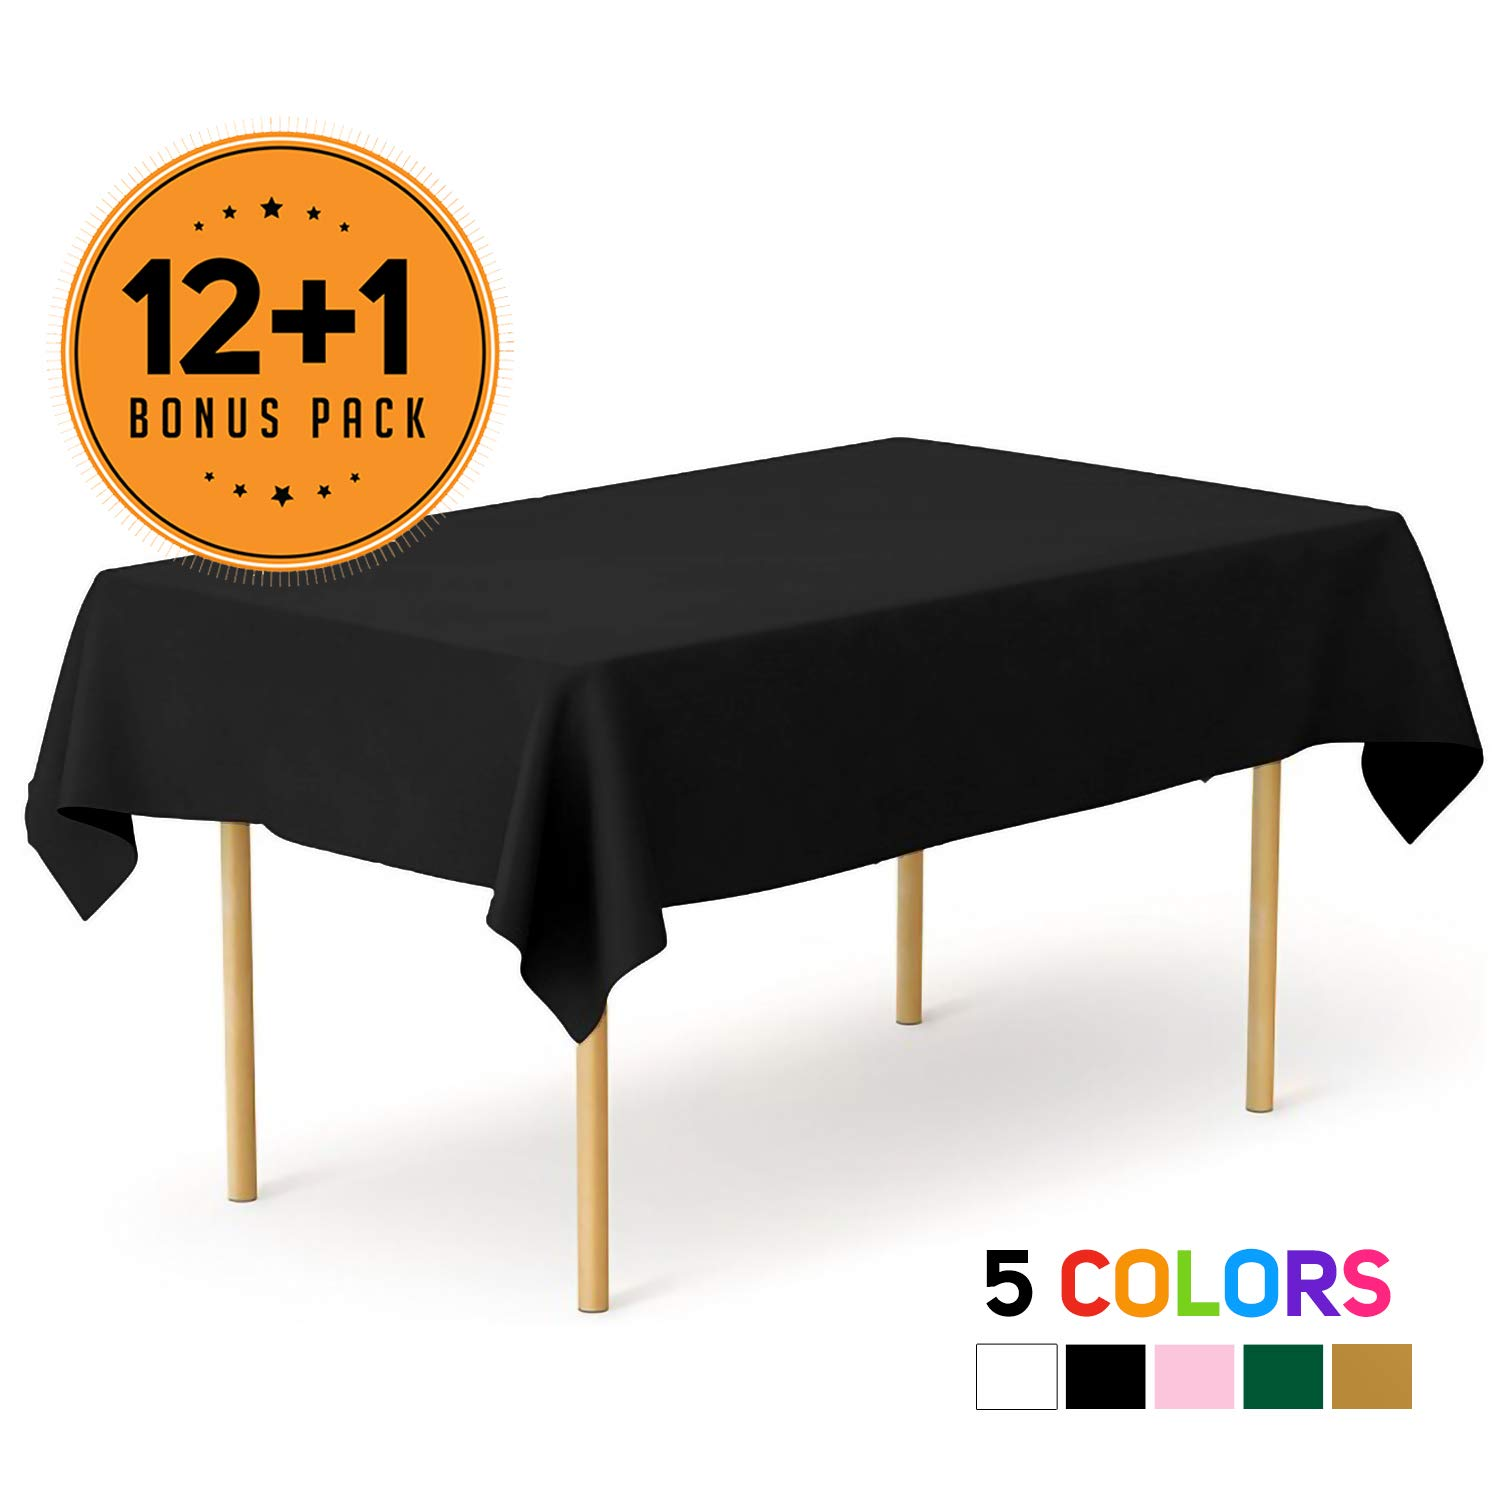 Black 13 Pack Premium Disposable Plastic Tablecloth 54 x 108 Inch - Waterproof Disposable Tablecloths for Rectangle Tables up to 8 ft in Length - Indoor or Outdoor Use - Party Plastic Table Cover by Eleclassi